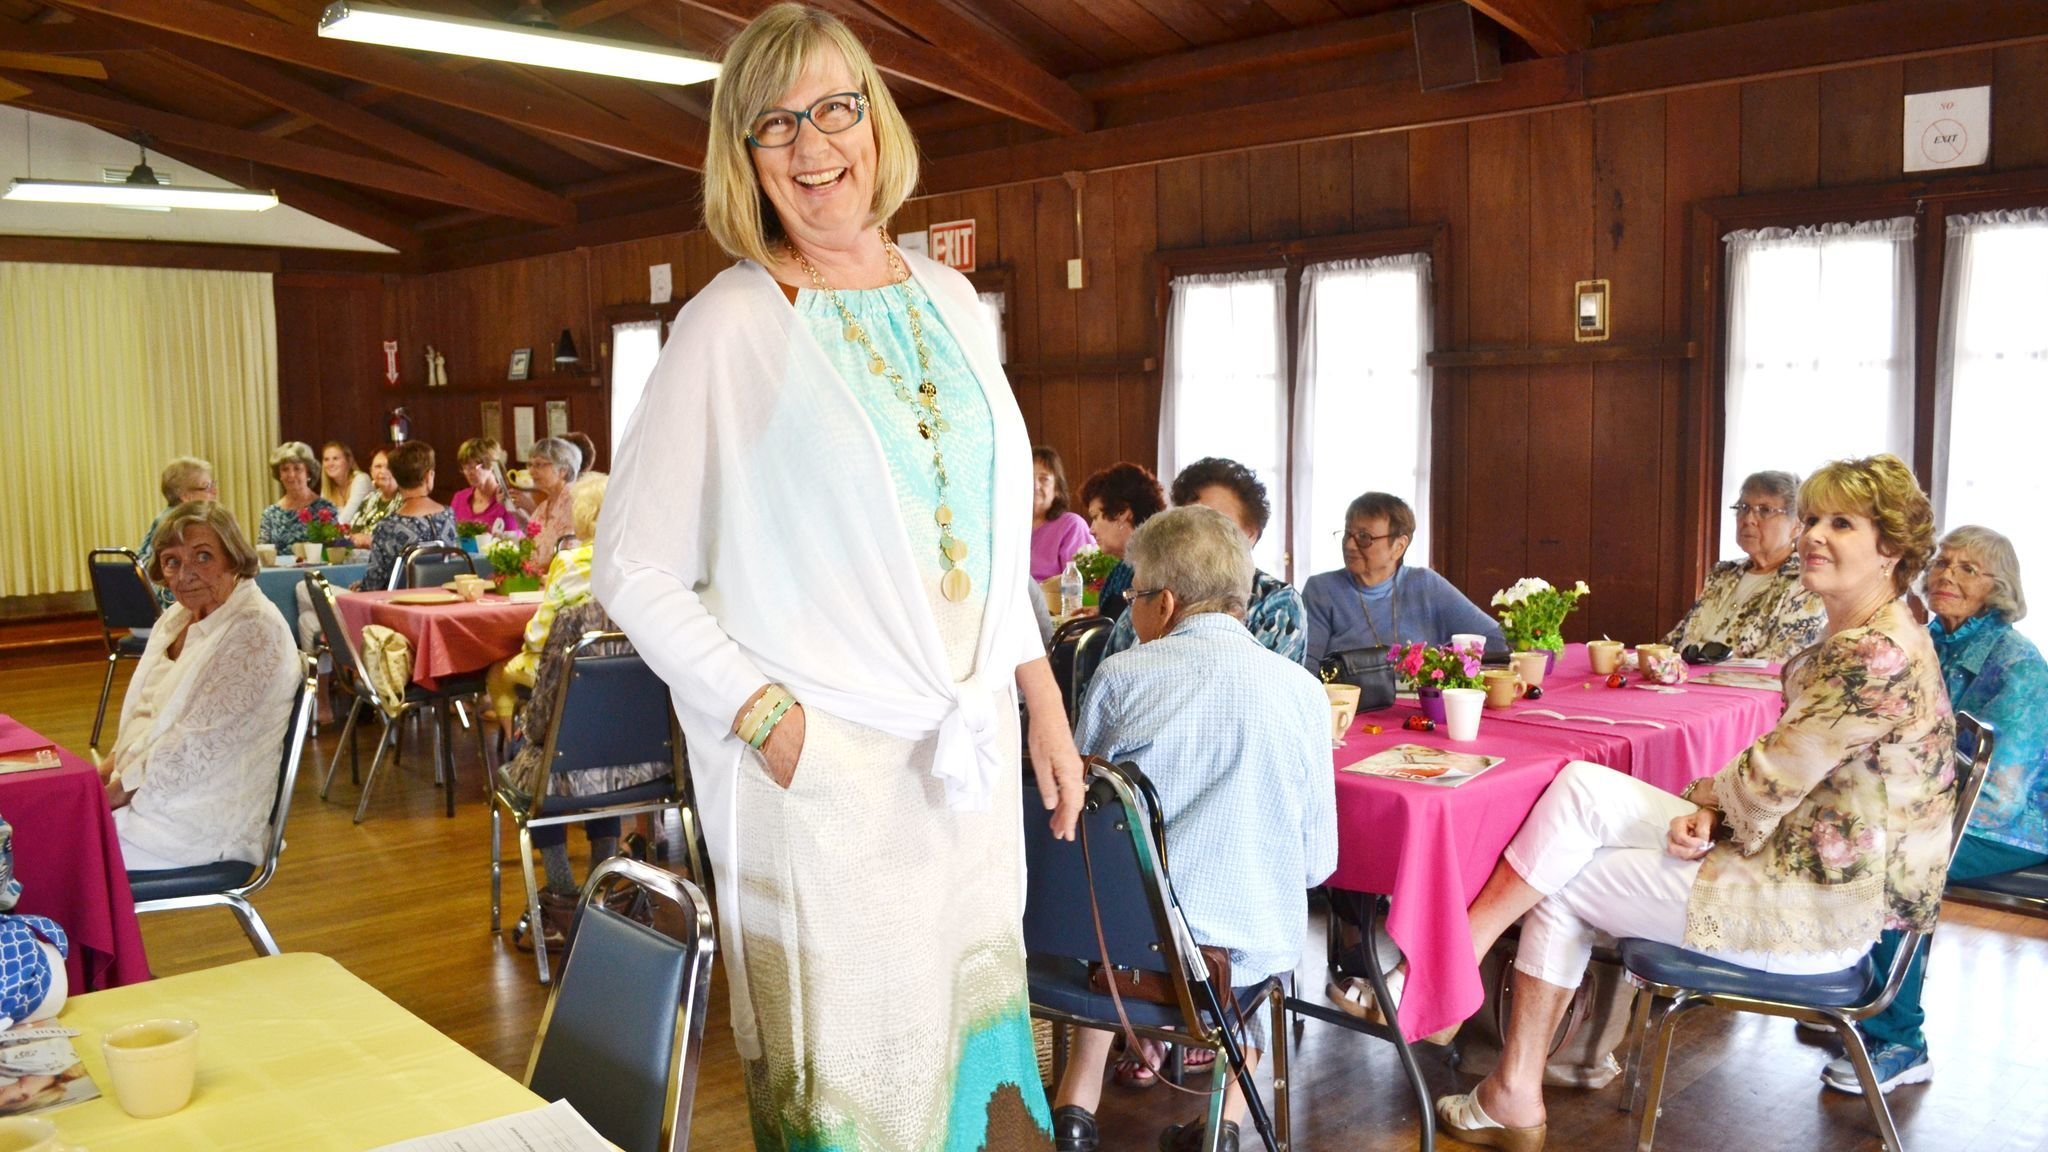 Wearing a Bahama Breeze halter maxi dress, Barbara Spain finds the side pocket as she models it for guests at the fashion show.